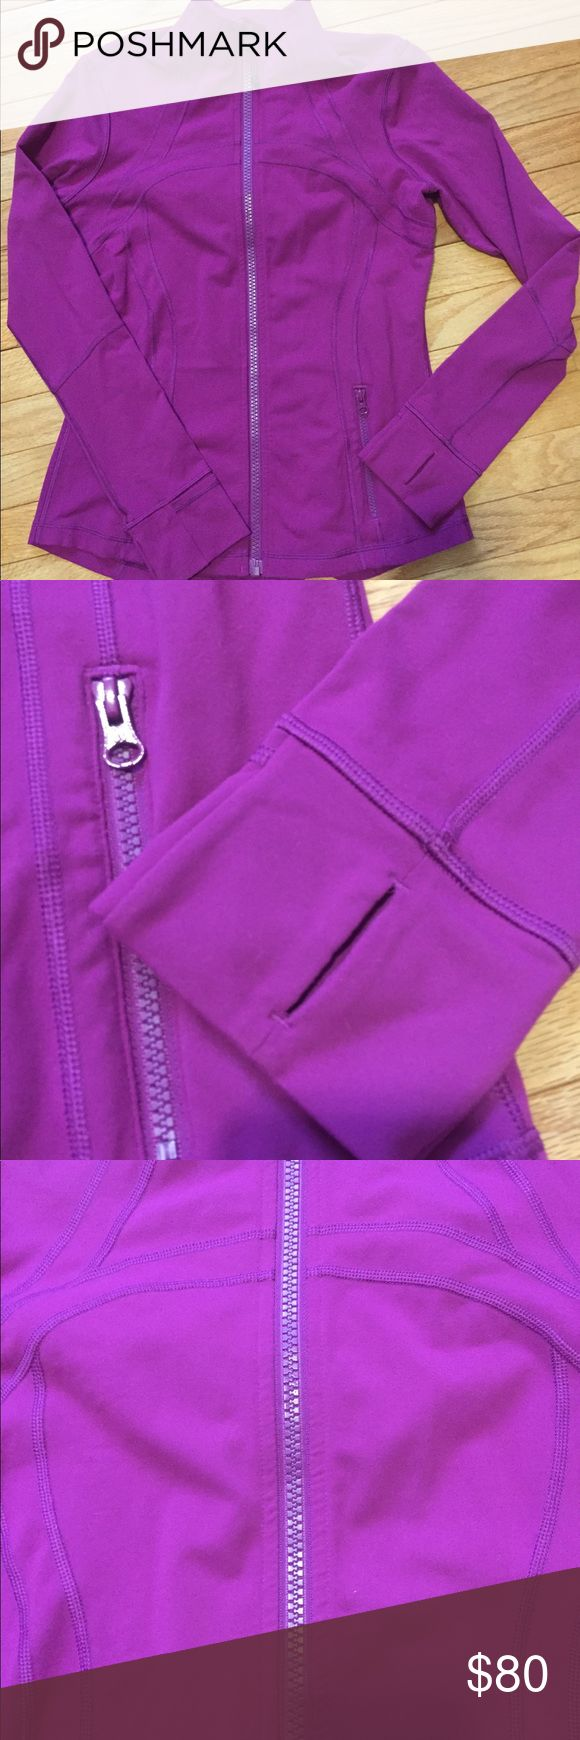 """Lululemon Tender Violet Define Jacket Lululemon Define Jacket Gorgeous magenta/purple color  Logo on zipper pull and back of jacket  Thumb holes  Vent on back with mean fabric (see photo)  No size tag (fits me and I'm a 10)  Length: 26"""" Bust: 18"""" Sleeve length: 25"""" (Some pilling under armpits)   All measurements are as accurate as possible lululemon athletica Jackets & Coats"""